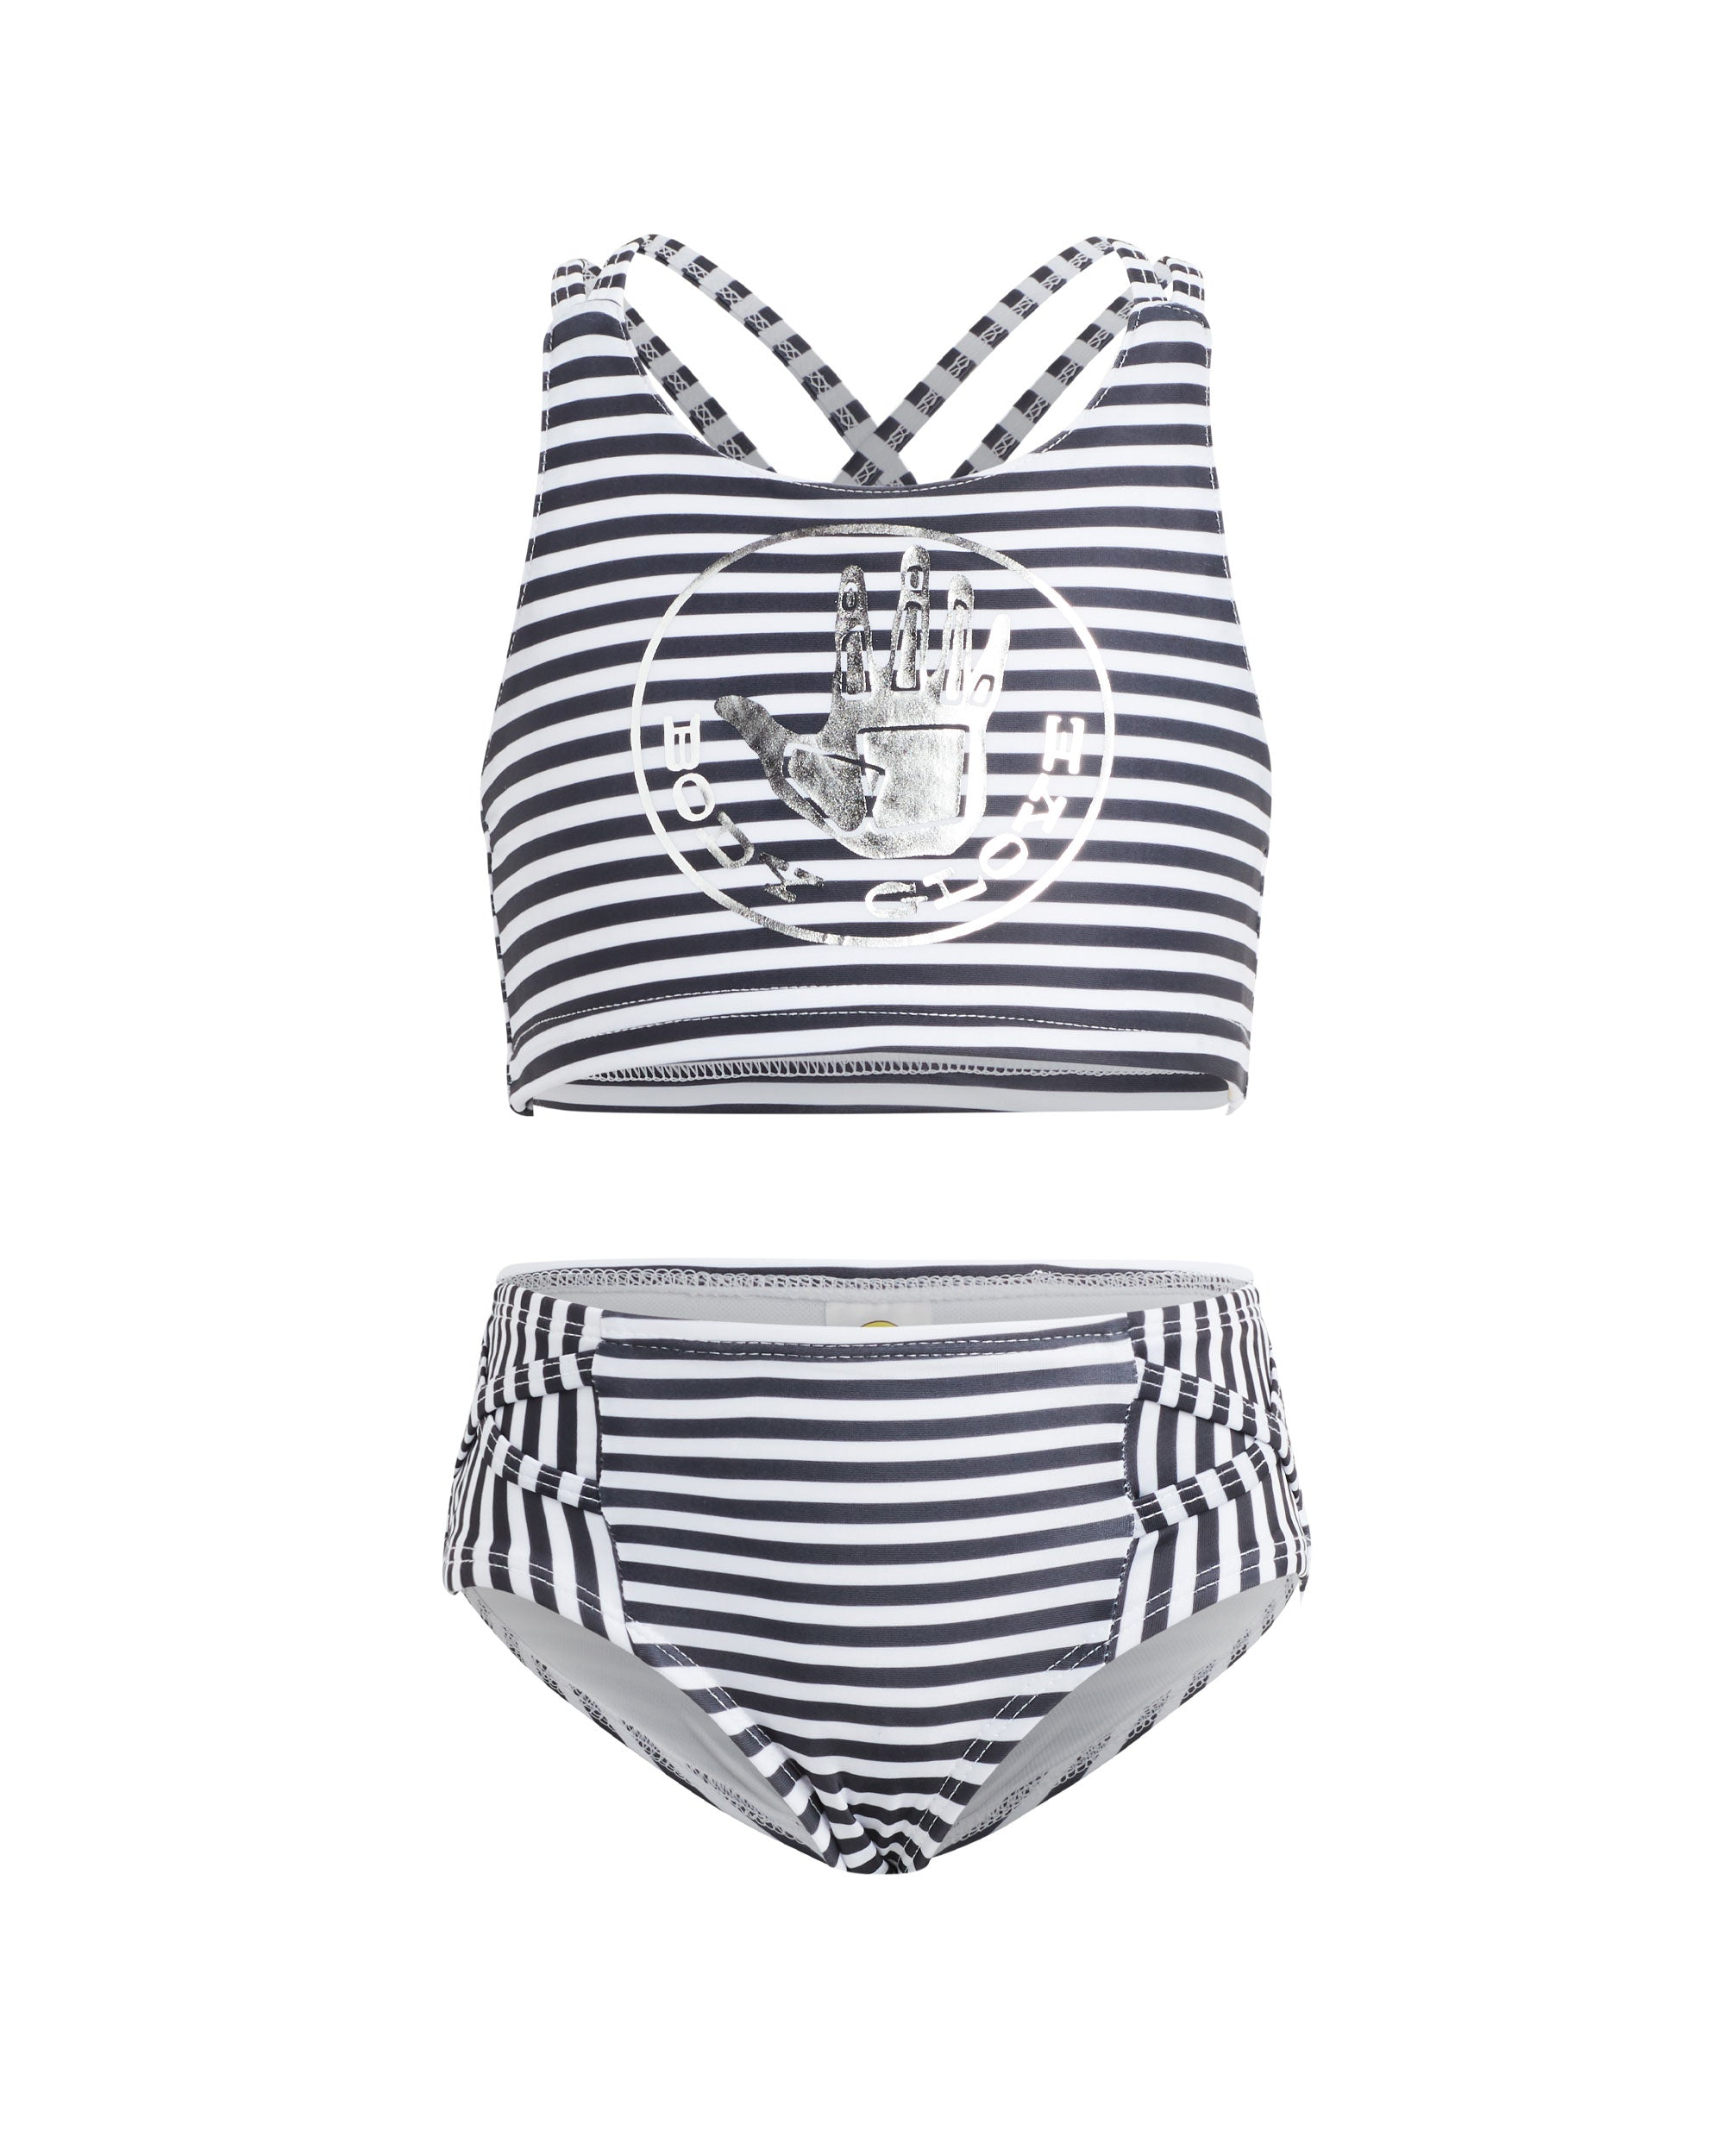 Details about  /Zoggs Girls Daisy Stripe frill Action swimsuit Gr 2-3 Years 2